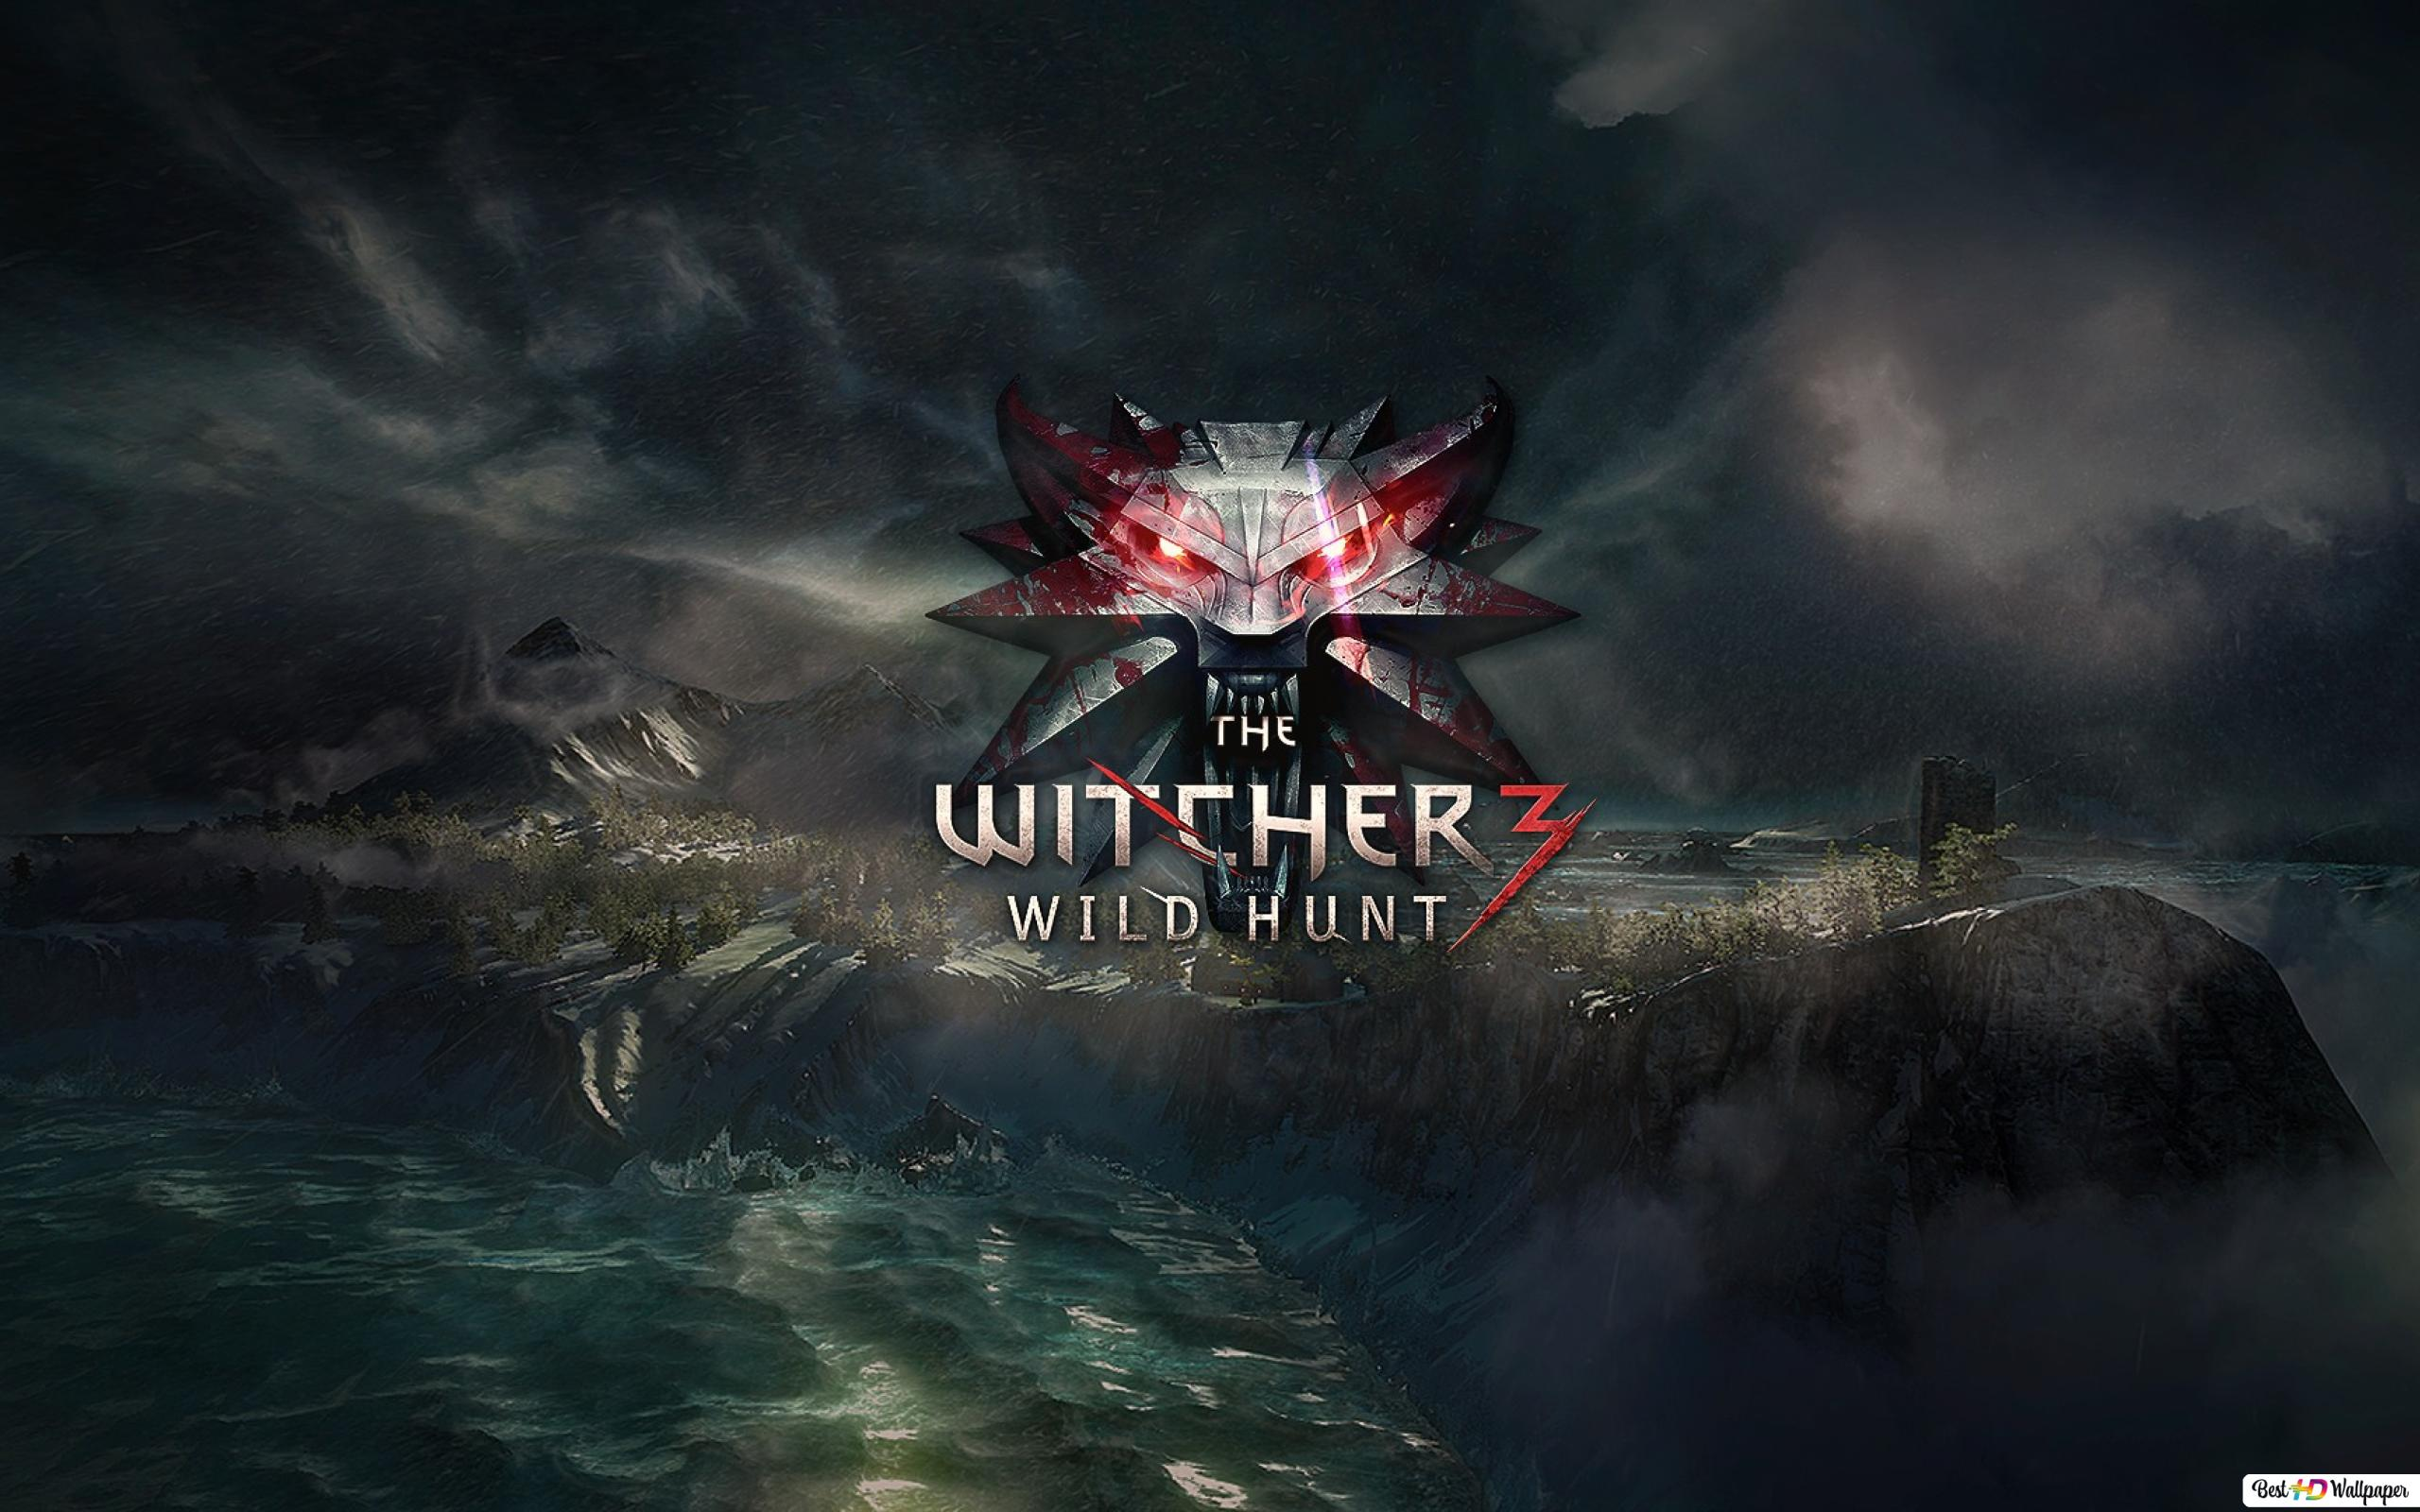 The Witcher 3 Wild Hunt Symbol Hd Wallpaper Download